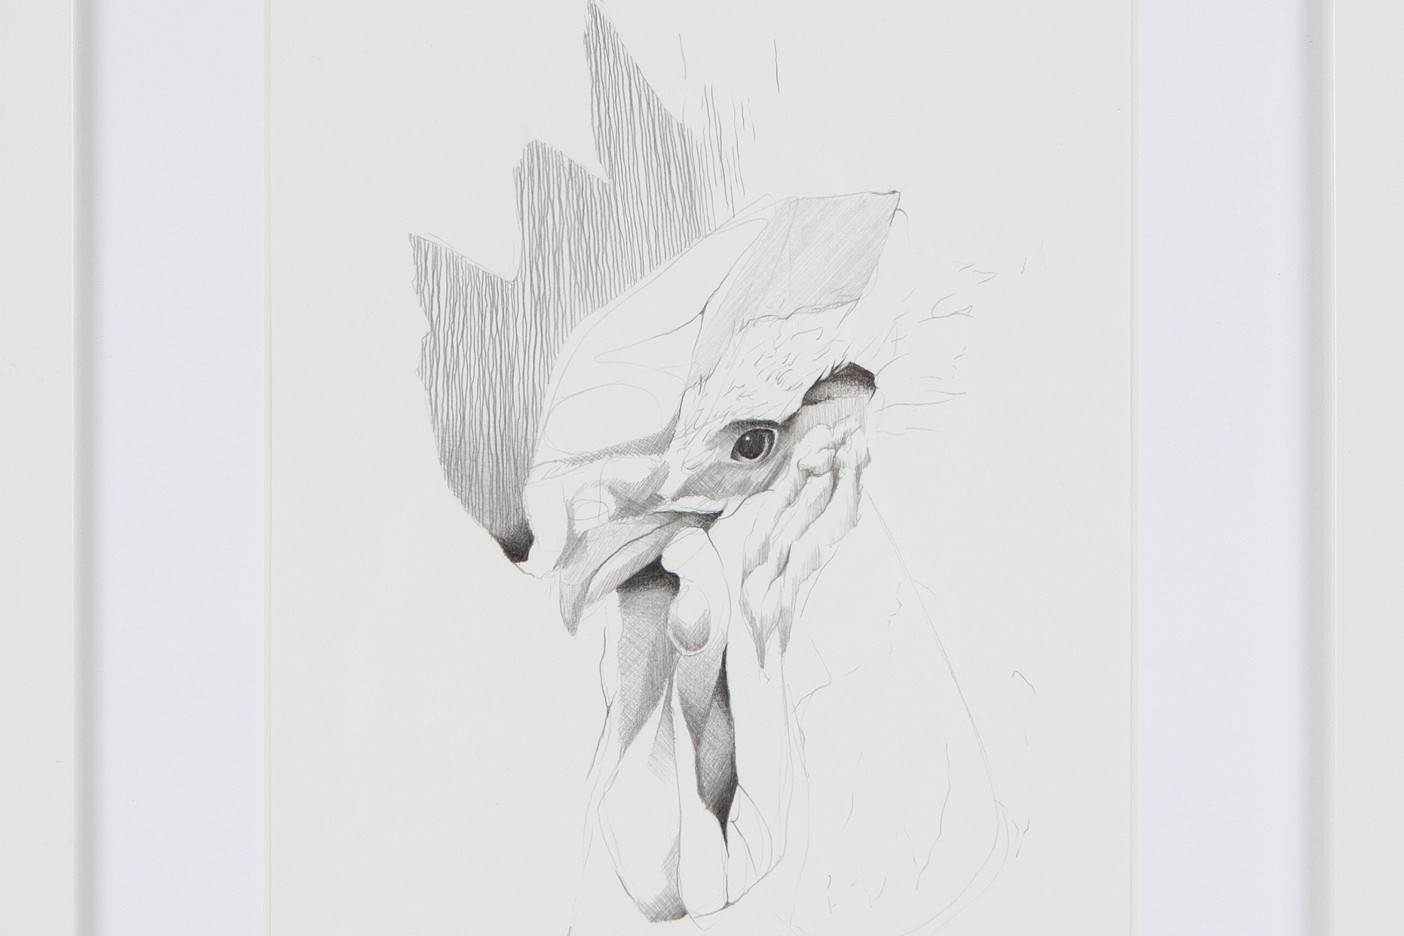 untitled (rooster)